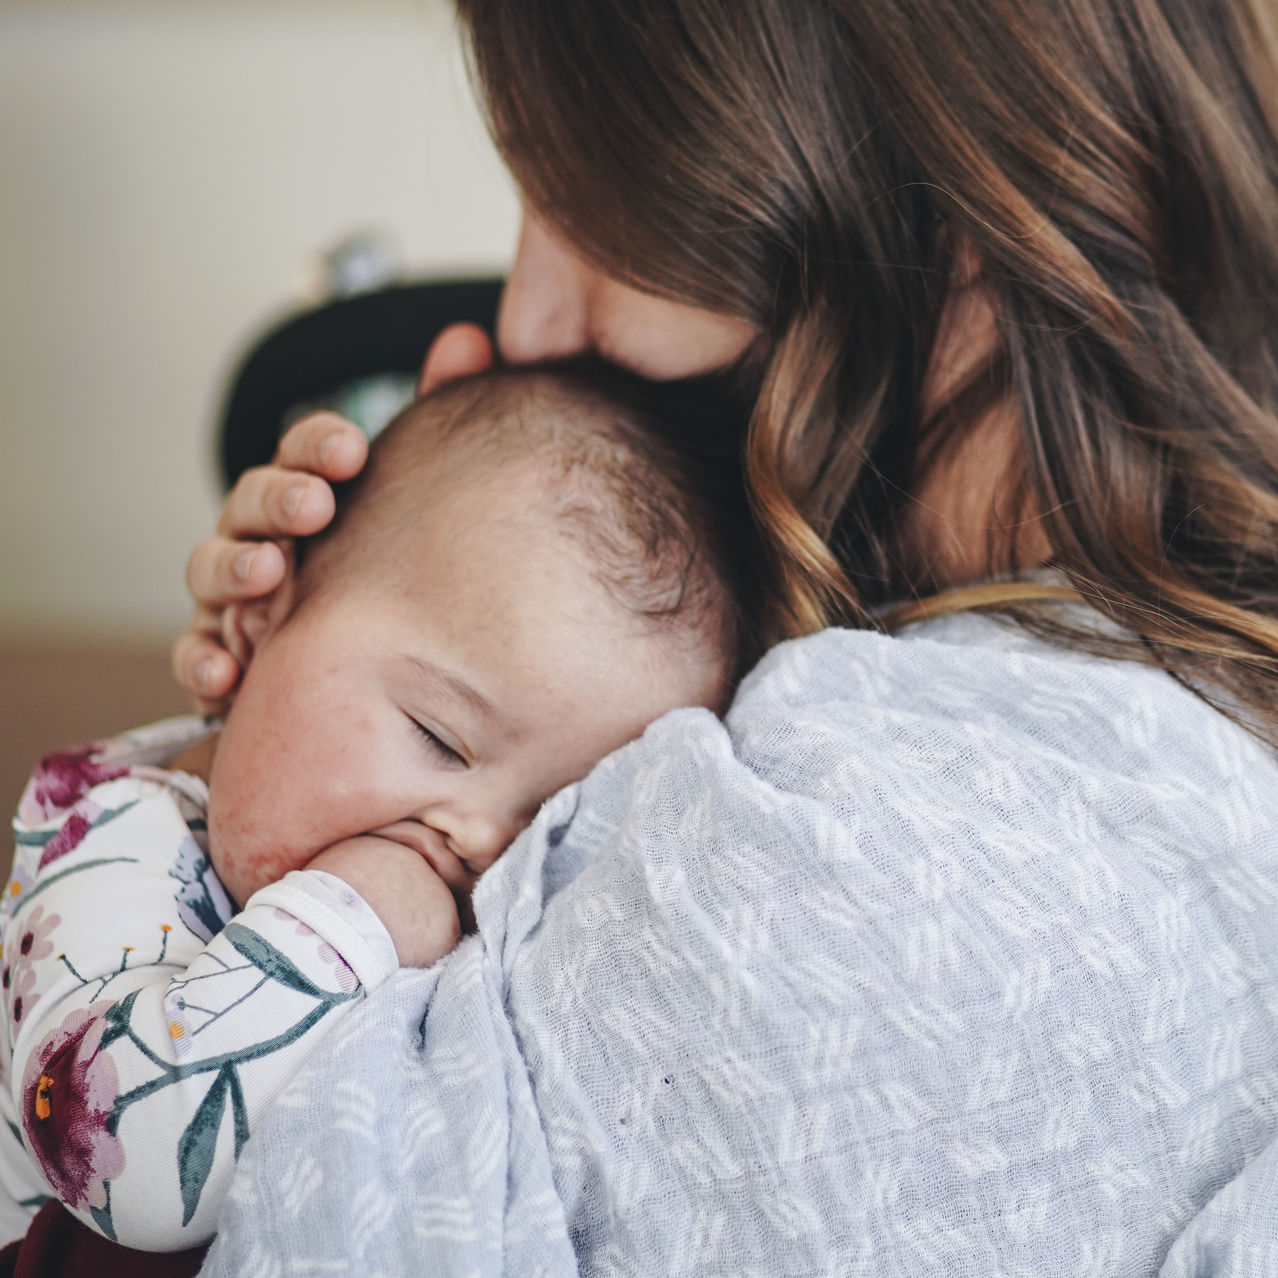 Katelyn Hodgson cradles her daughter, Frances, during a recent meeting of a group treatment program for perinatal anxiety at St. Joseph's Healthcare Hamilton in Hamilton, Ontario.